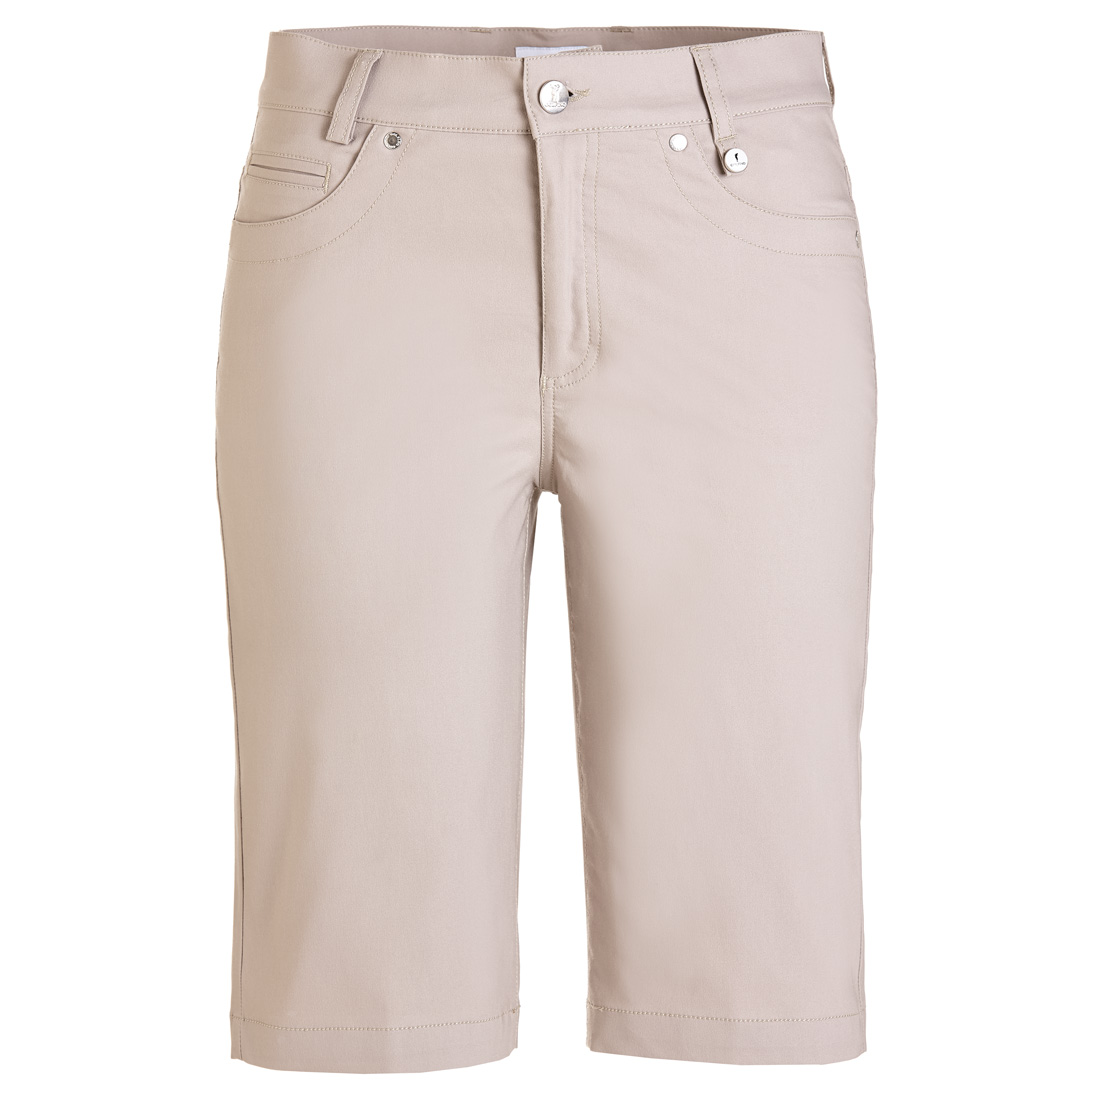 5-pocket golf Bermudas in cotton stretch with UV protection in slim fit